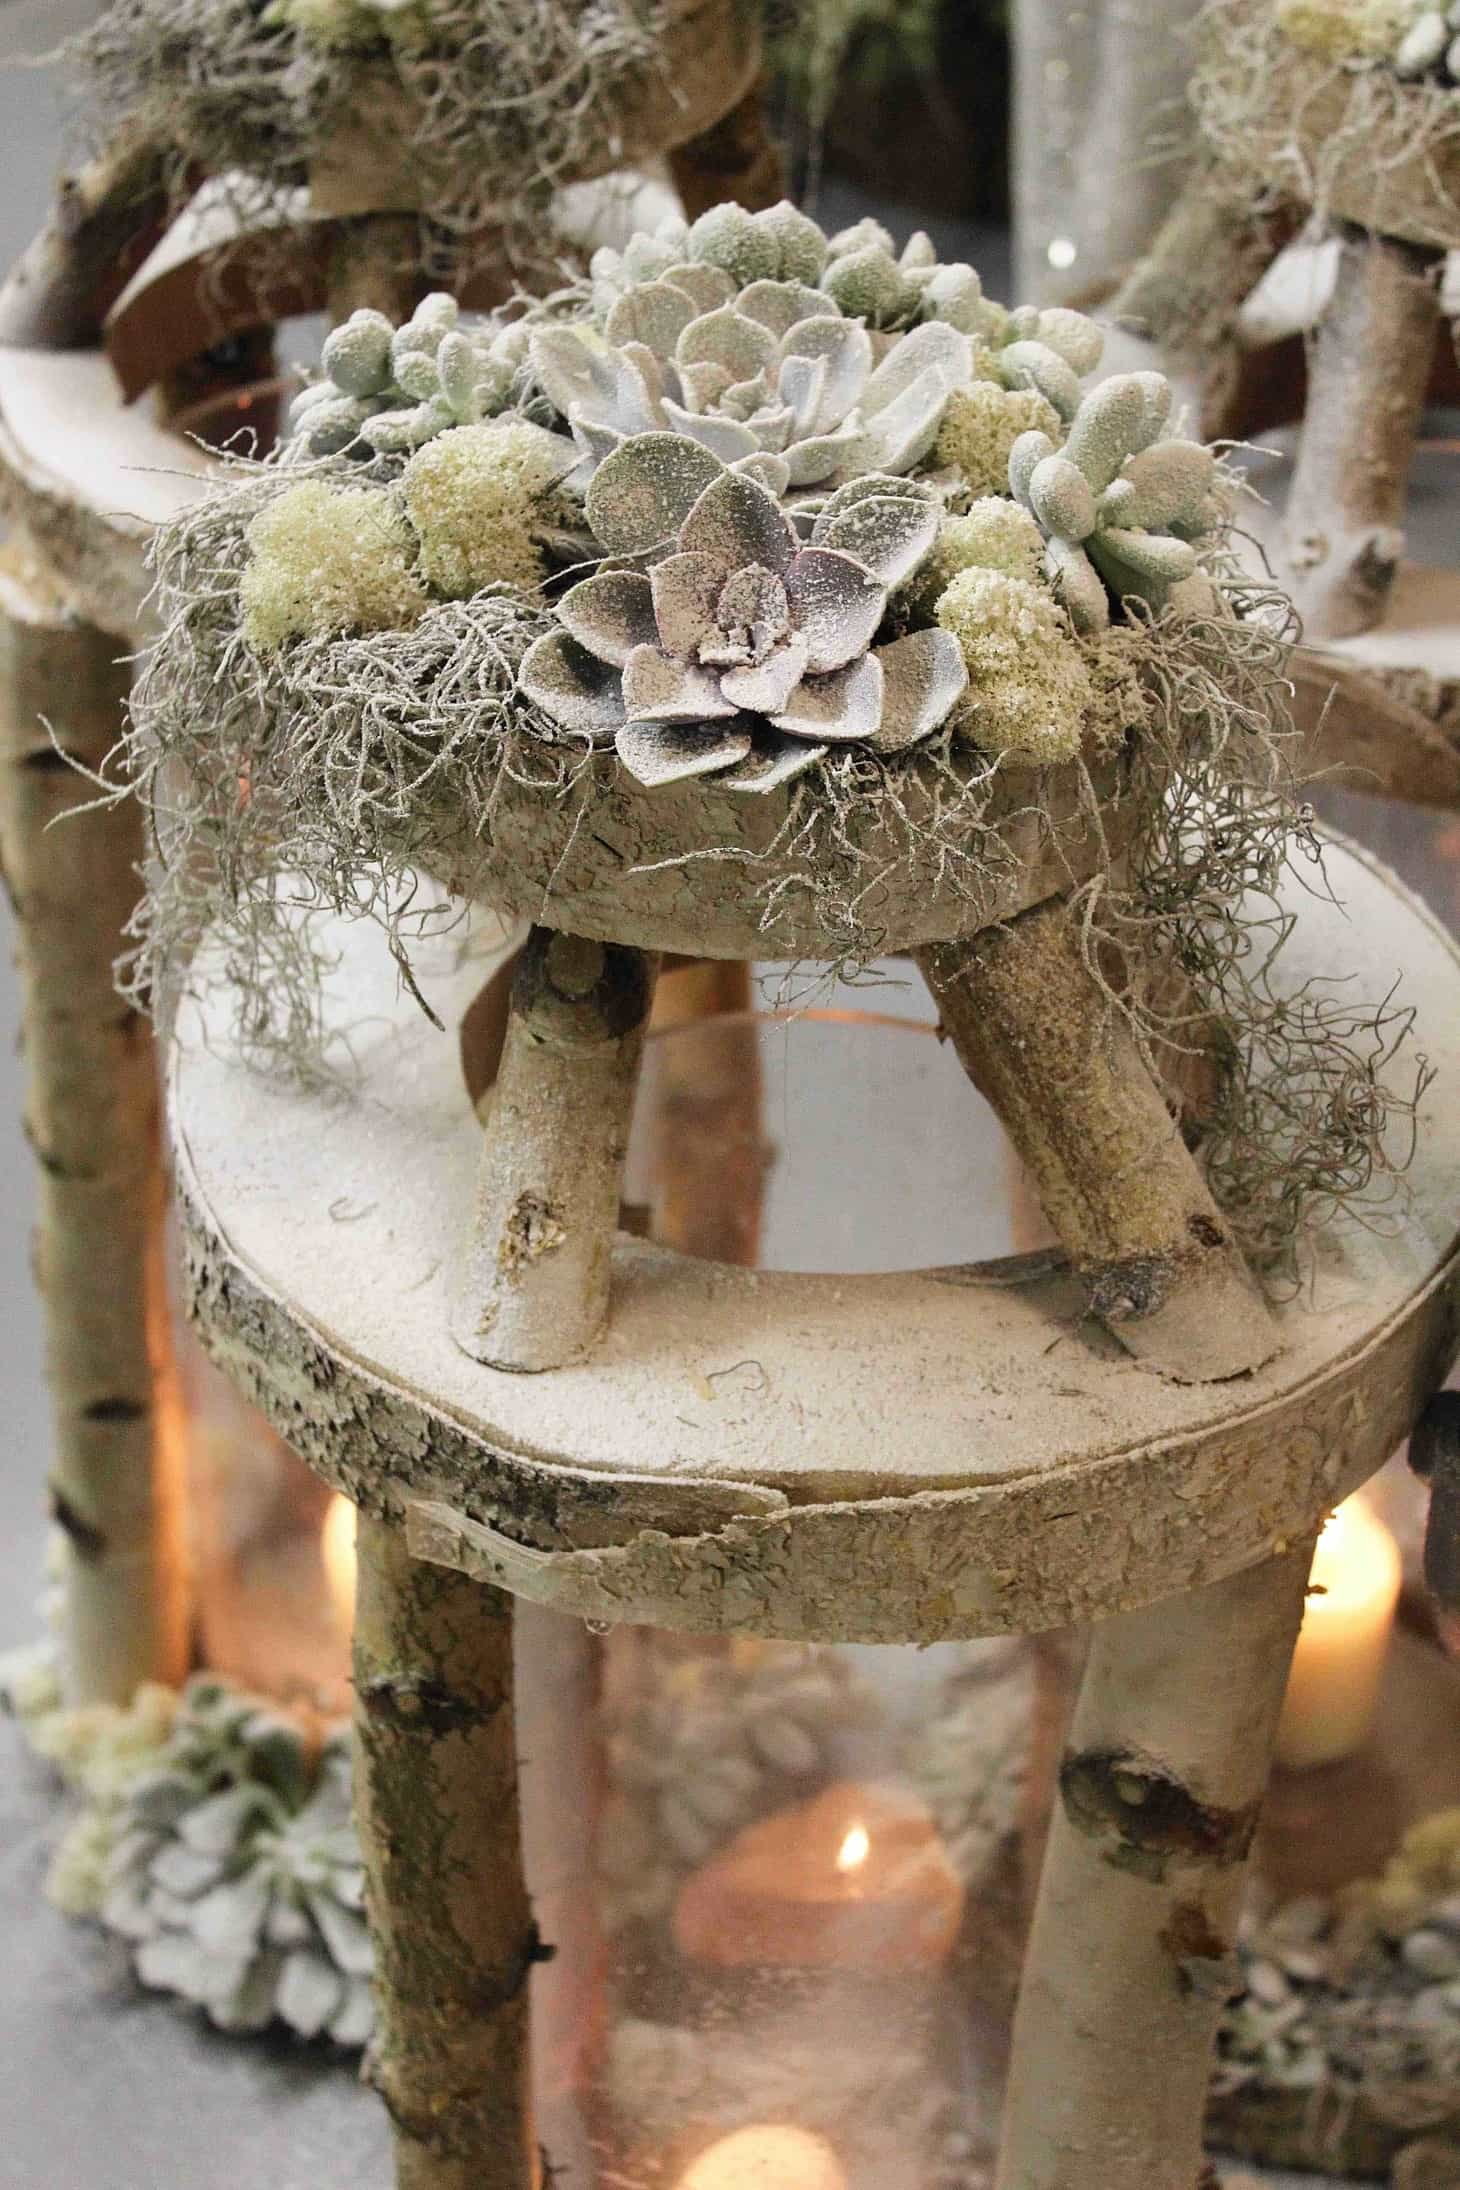 Christmas showcase, Wild at Heart, how to decorate for christmas, winter decor, roses, christmas 2015 trends